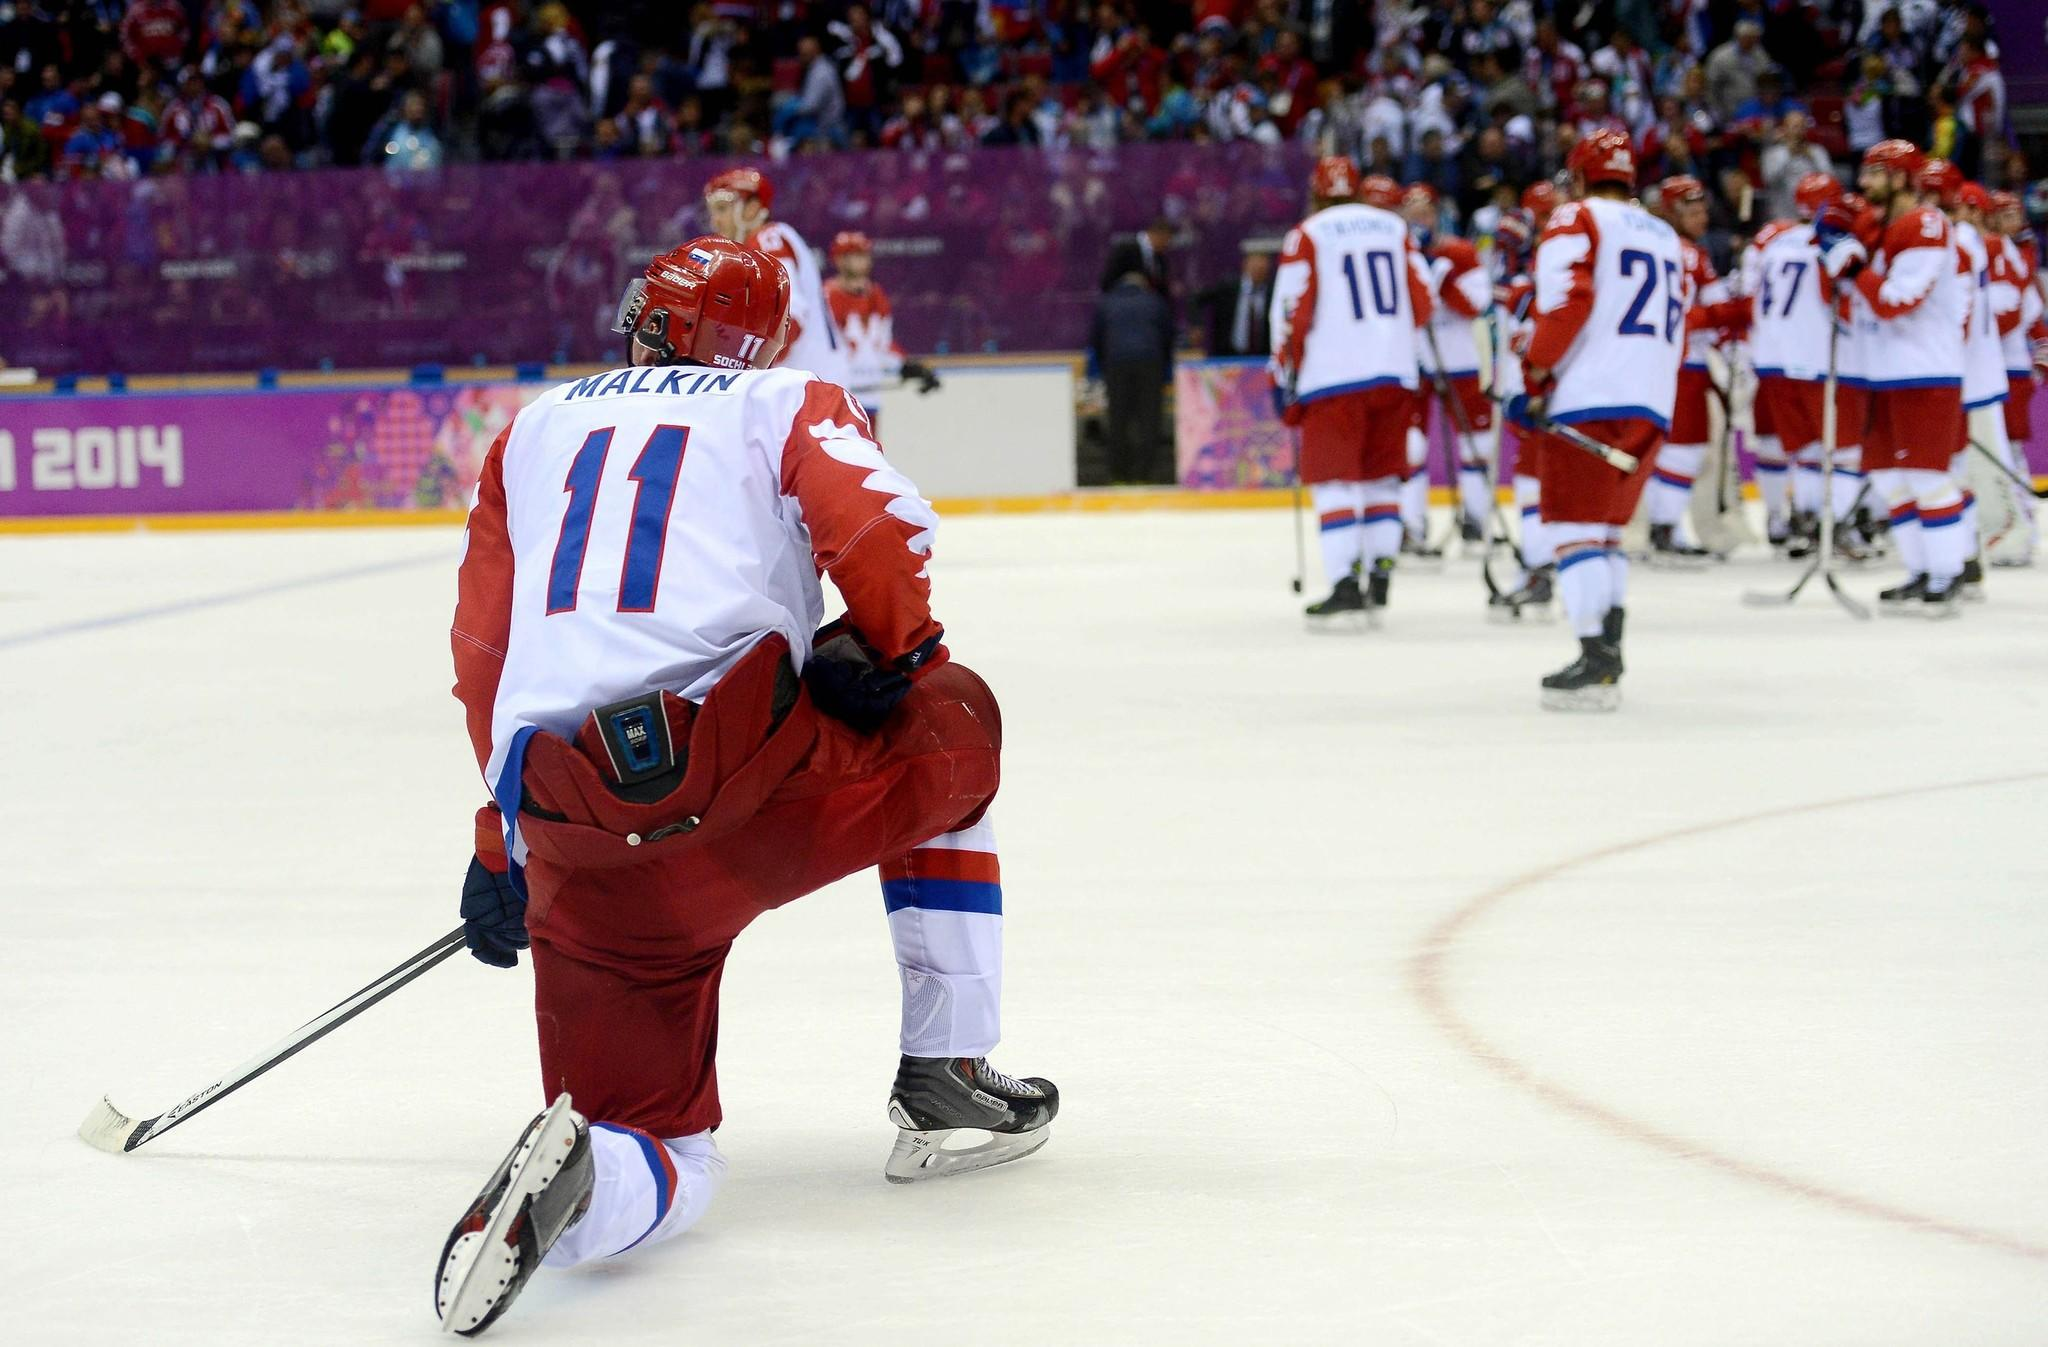 Evgeni Malkin looks down the ice after Russia's 3-1 quarterfinal loss to Finland on Wednesday at the Bolshoy Ice Dome.